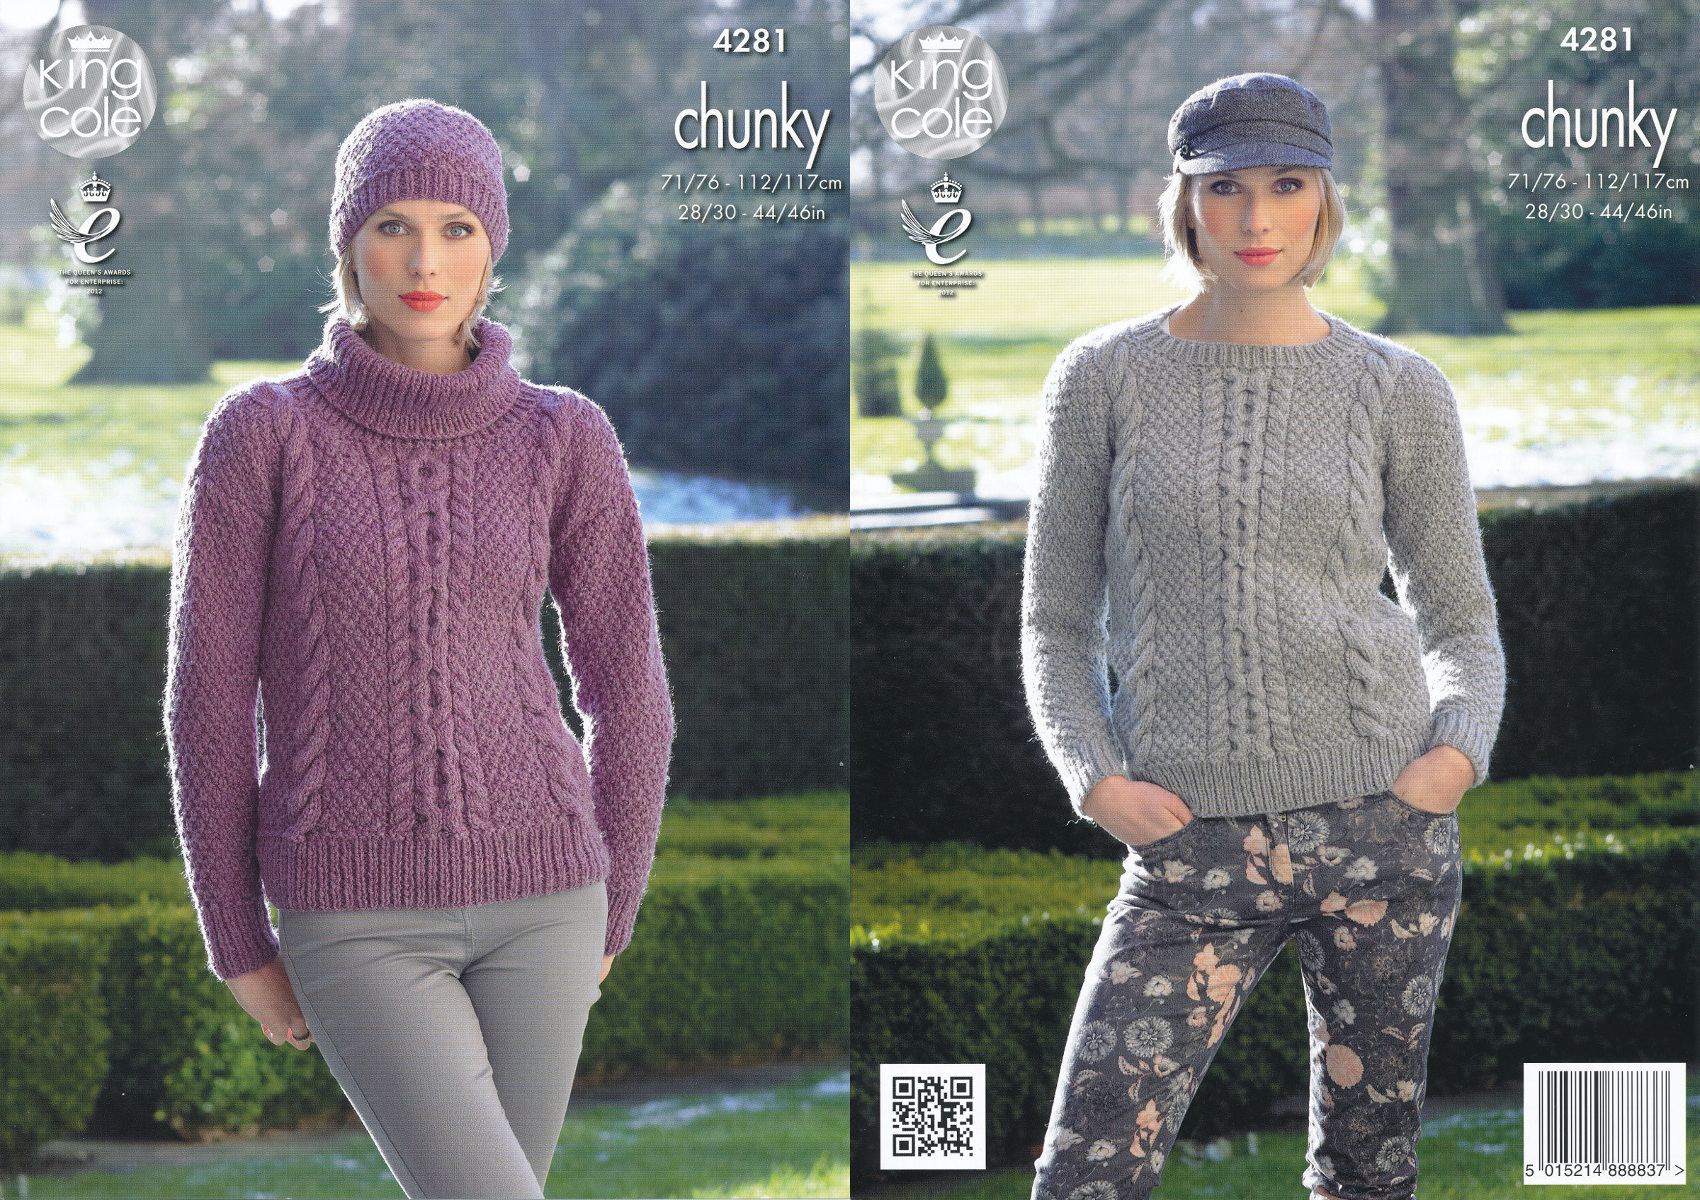 Womens chunky knit pattern king cole ladies cable detail sweater item description this chunky knitting pattern leaflet 4281 by king cole bankloansurffo Gallery